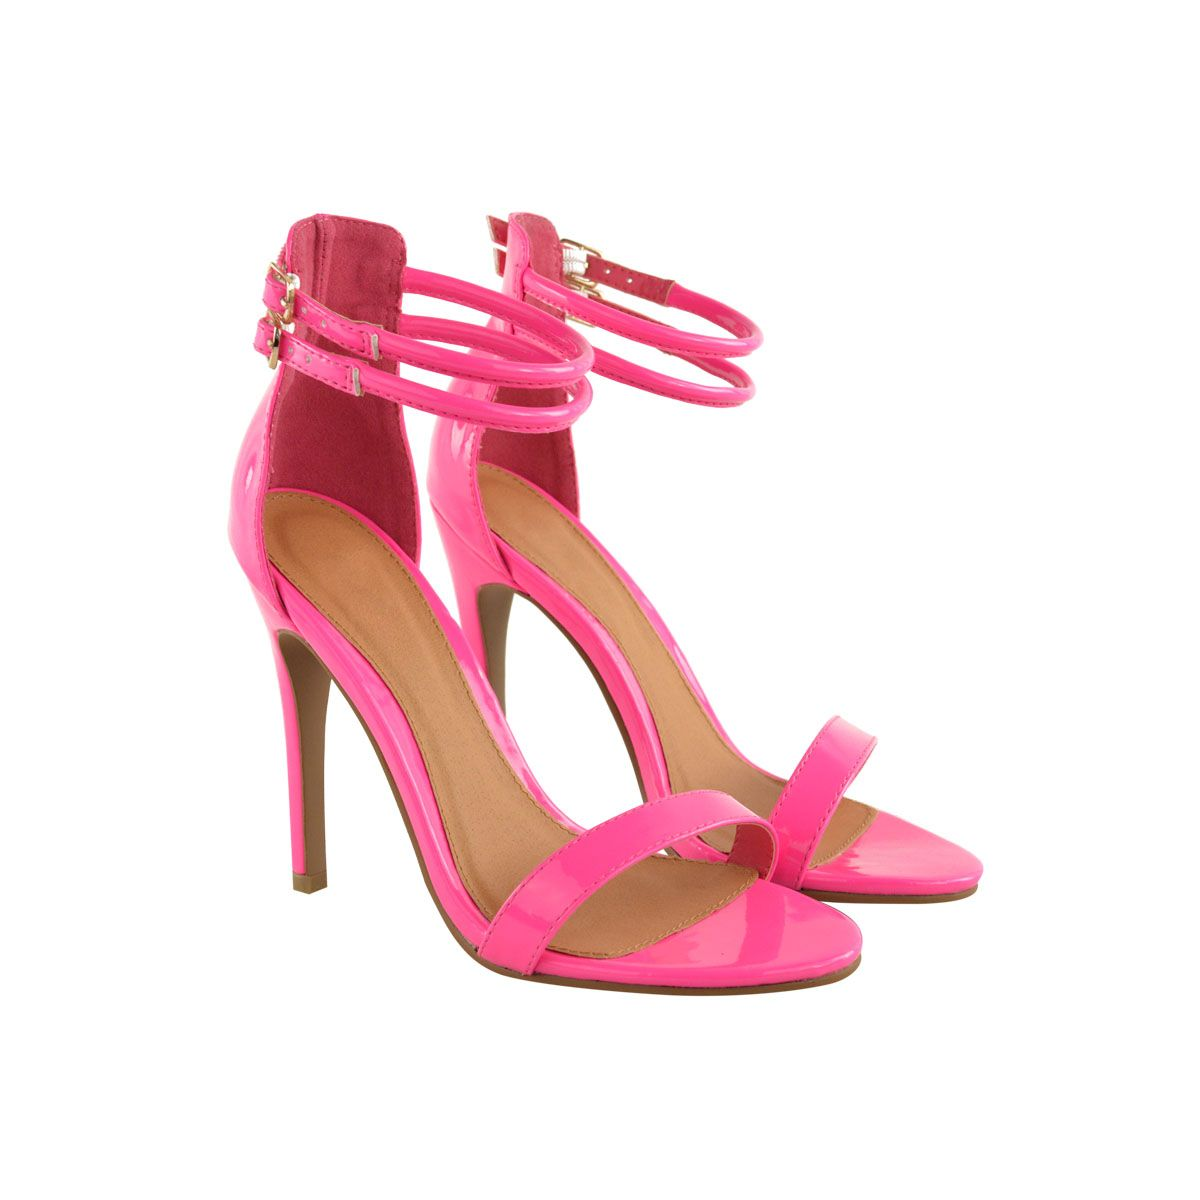 6d18a6e4bf9 neon pink strappy heels - Google Search